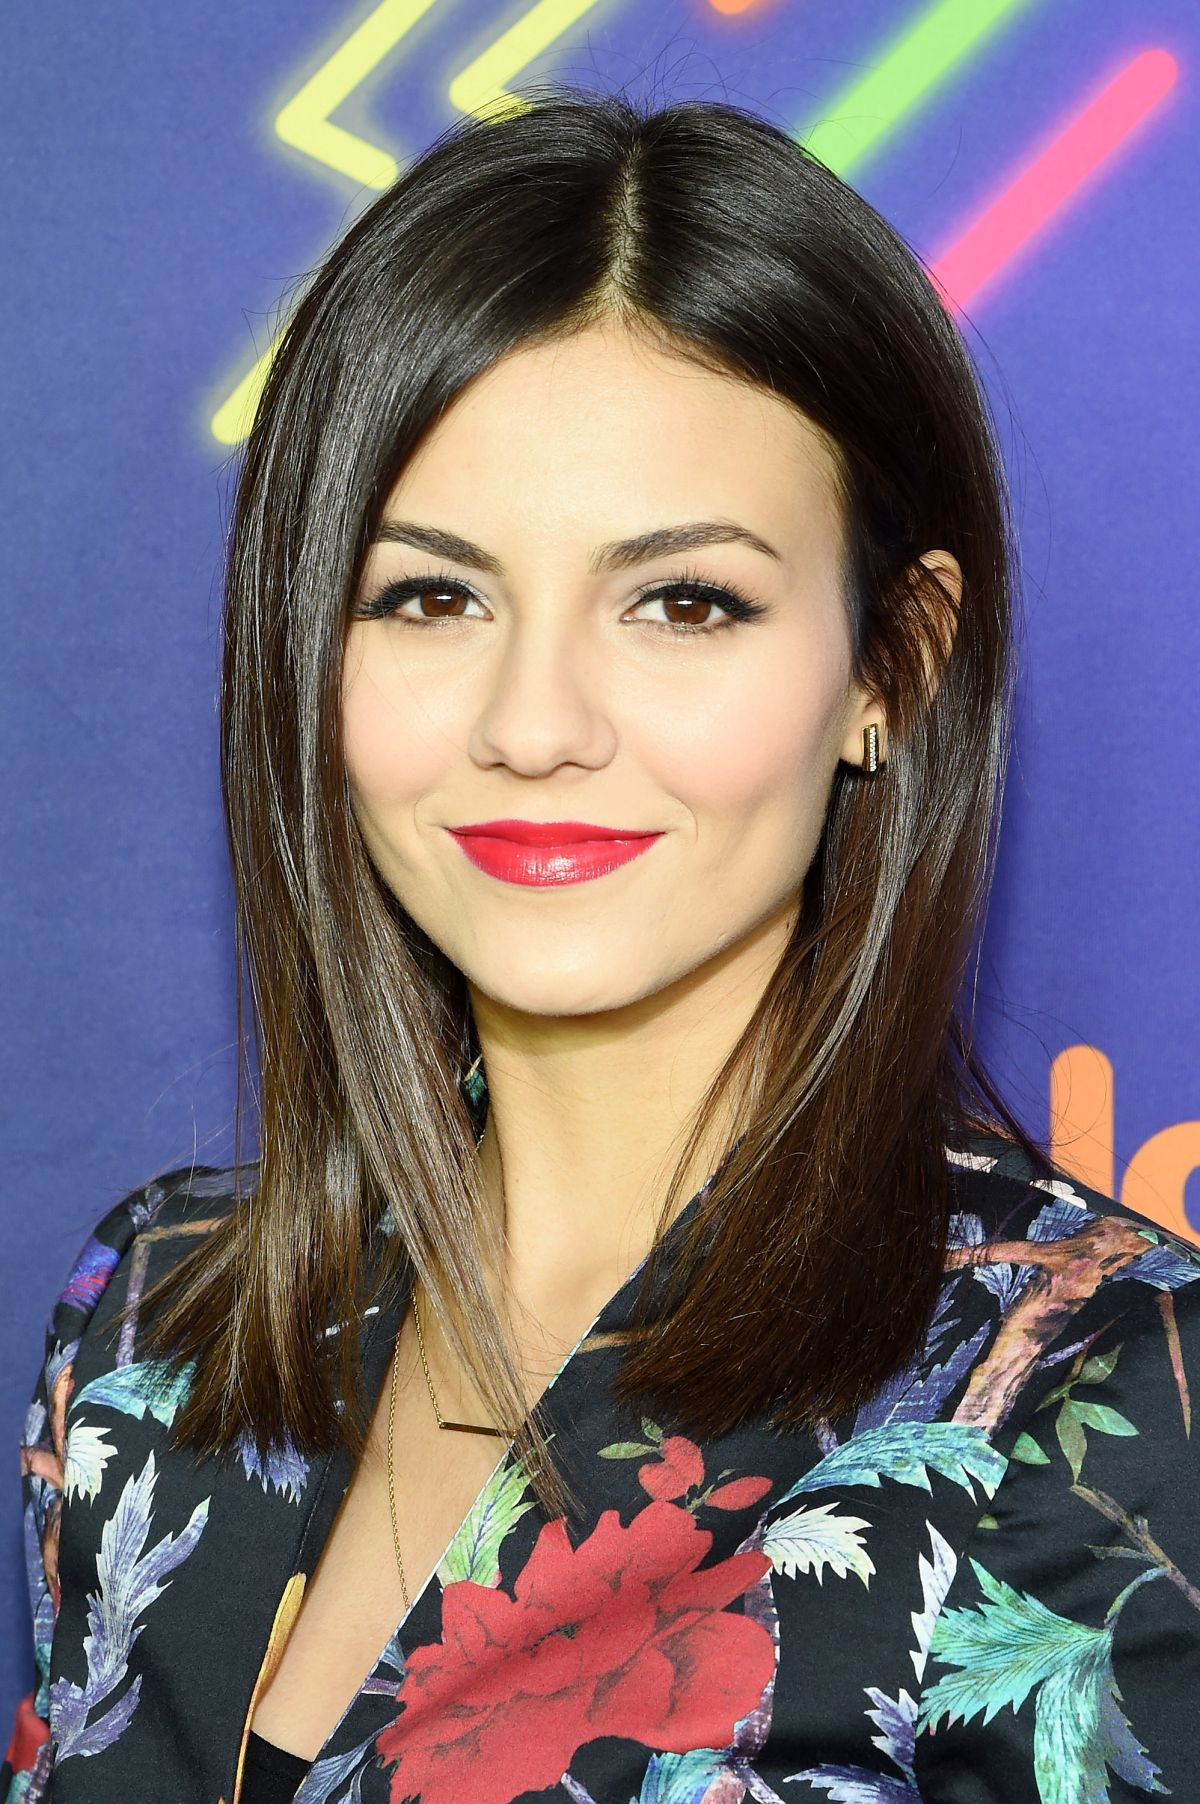 Victoria Justice At 6th Annual Nickelodeon HALO Awards